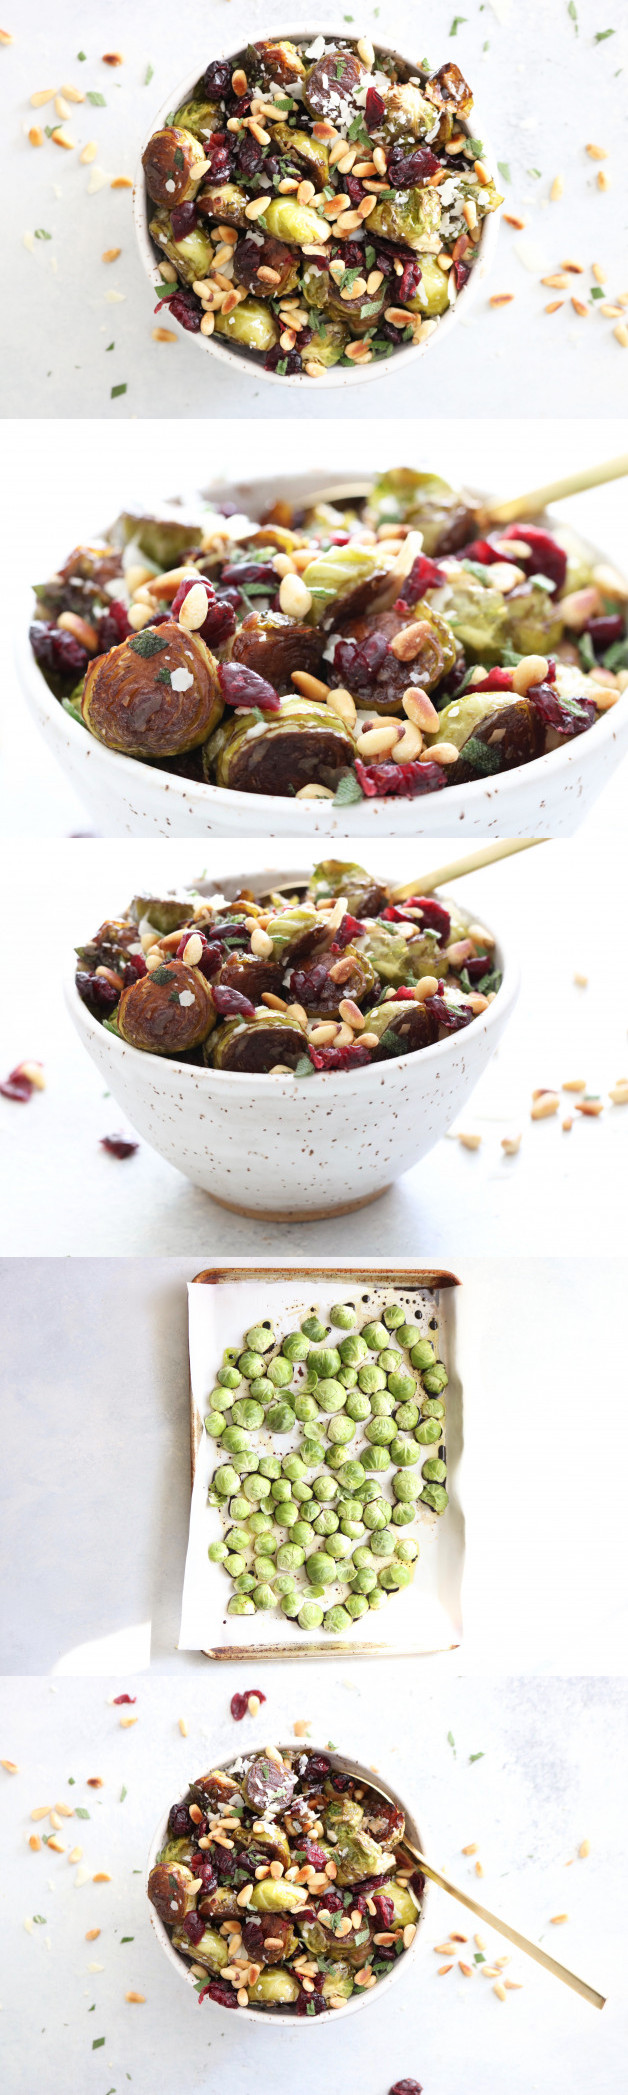 Roasted Balsamic Brussels Sprouts - The Toasted Pine Nut